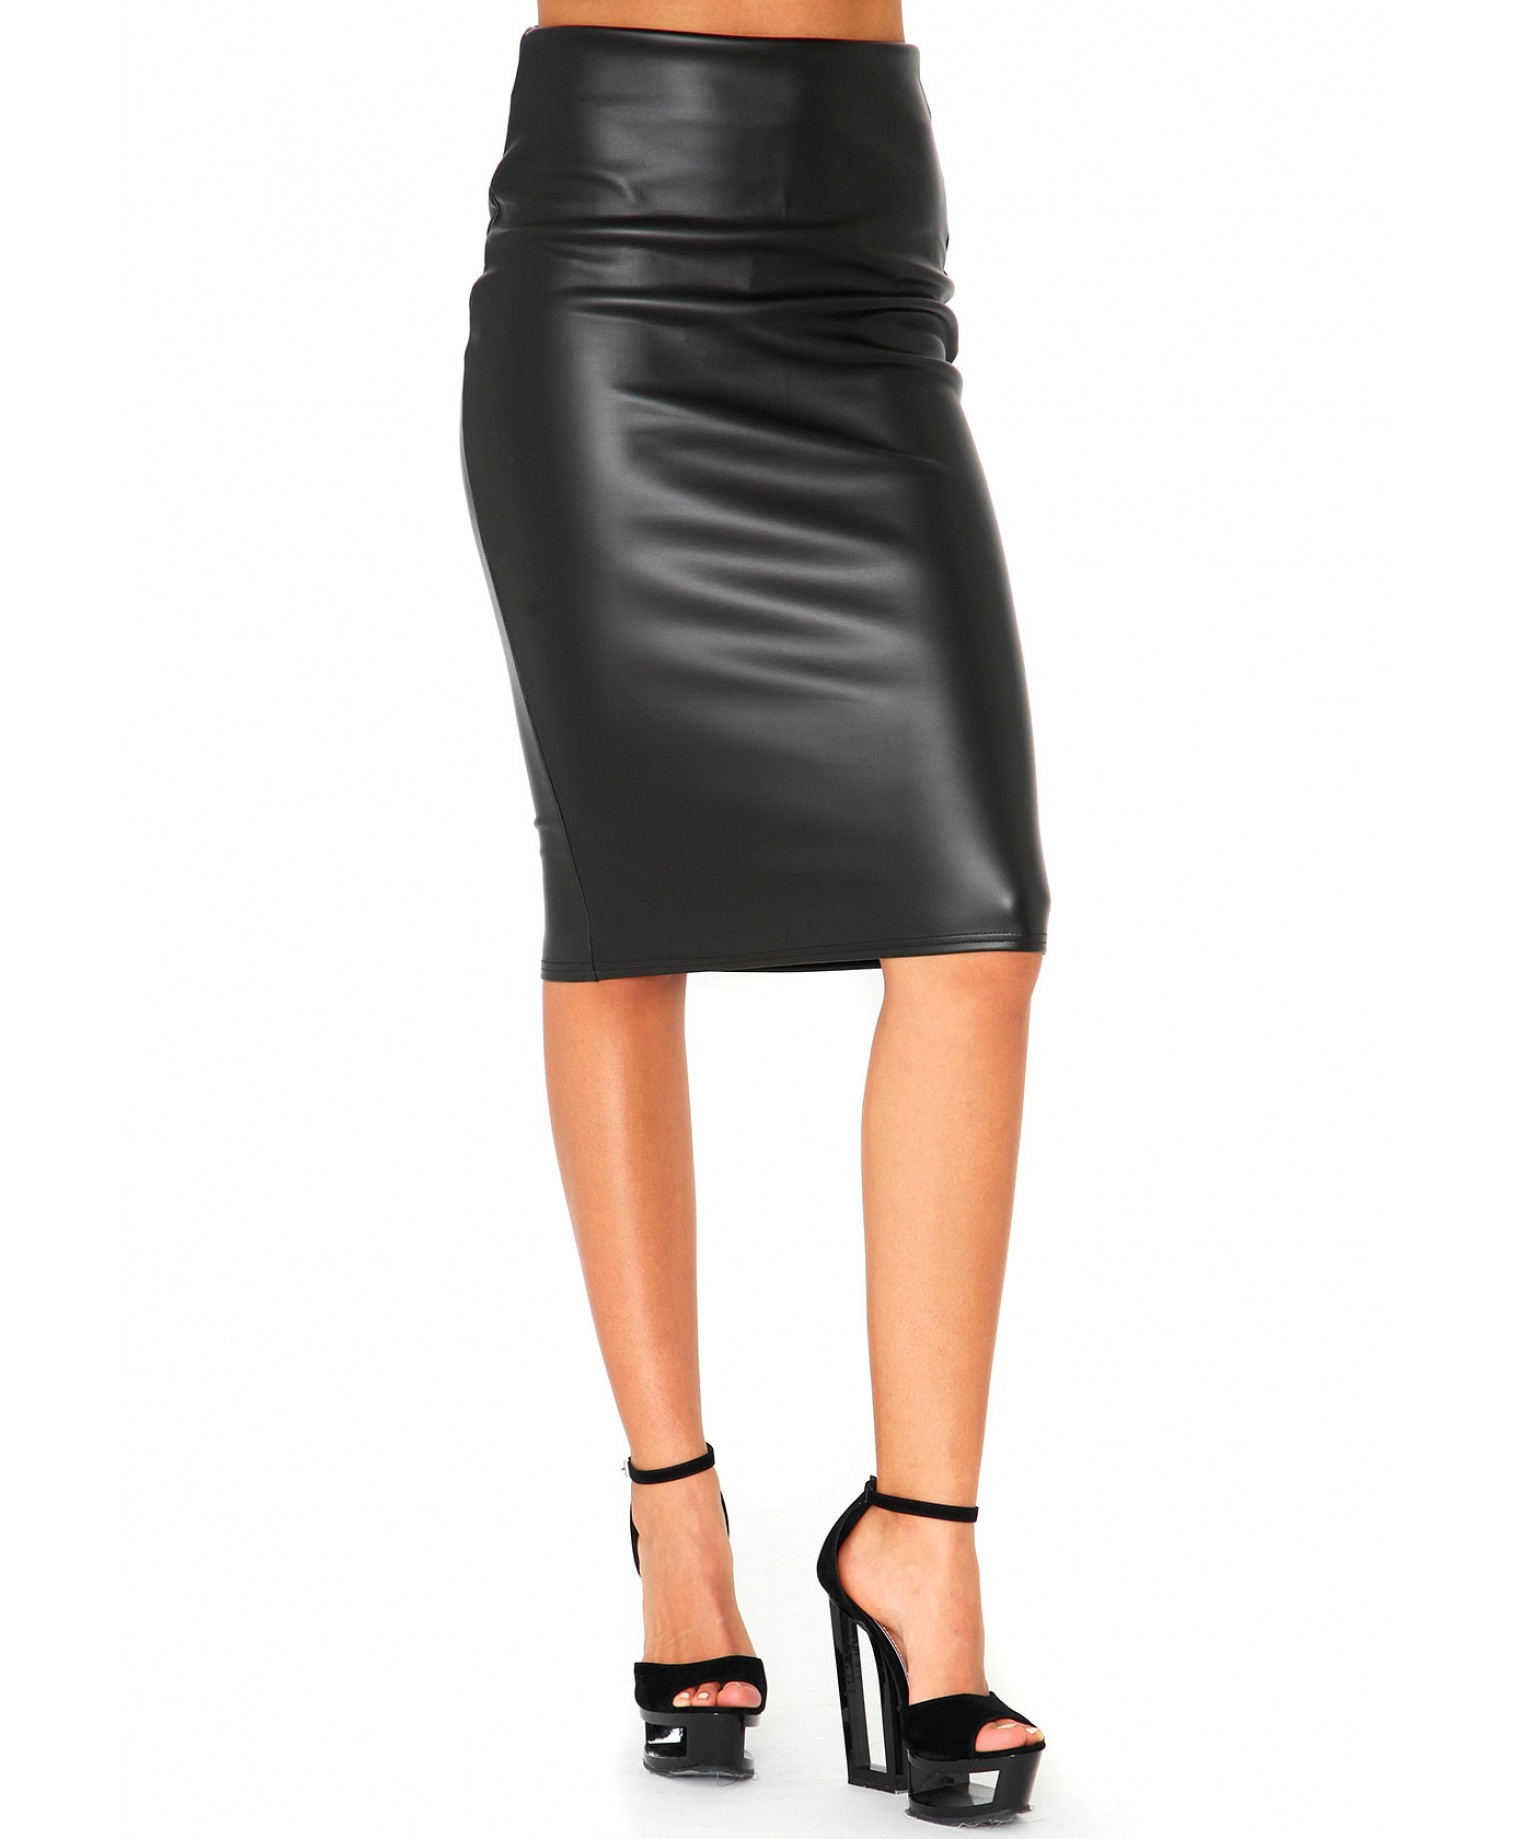 Lyst - Missguided Korie Leather Look Pencil Skirt in Black